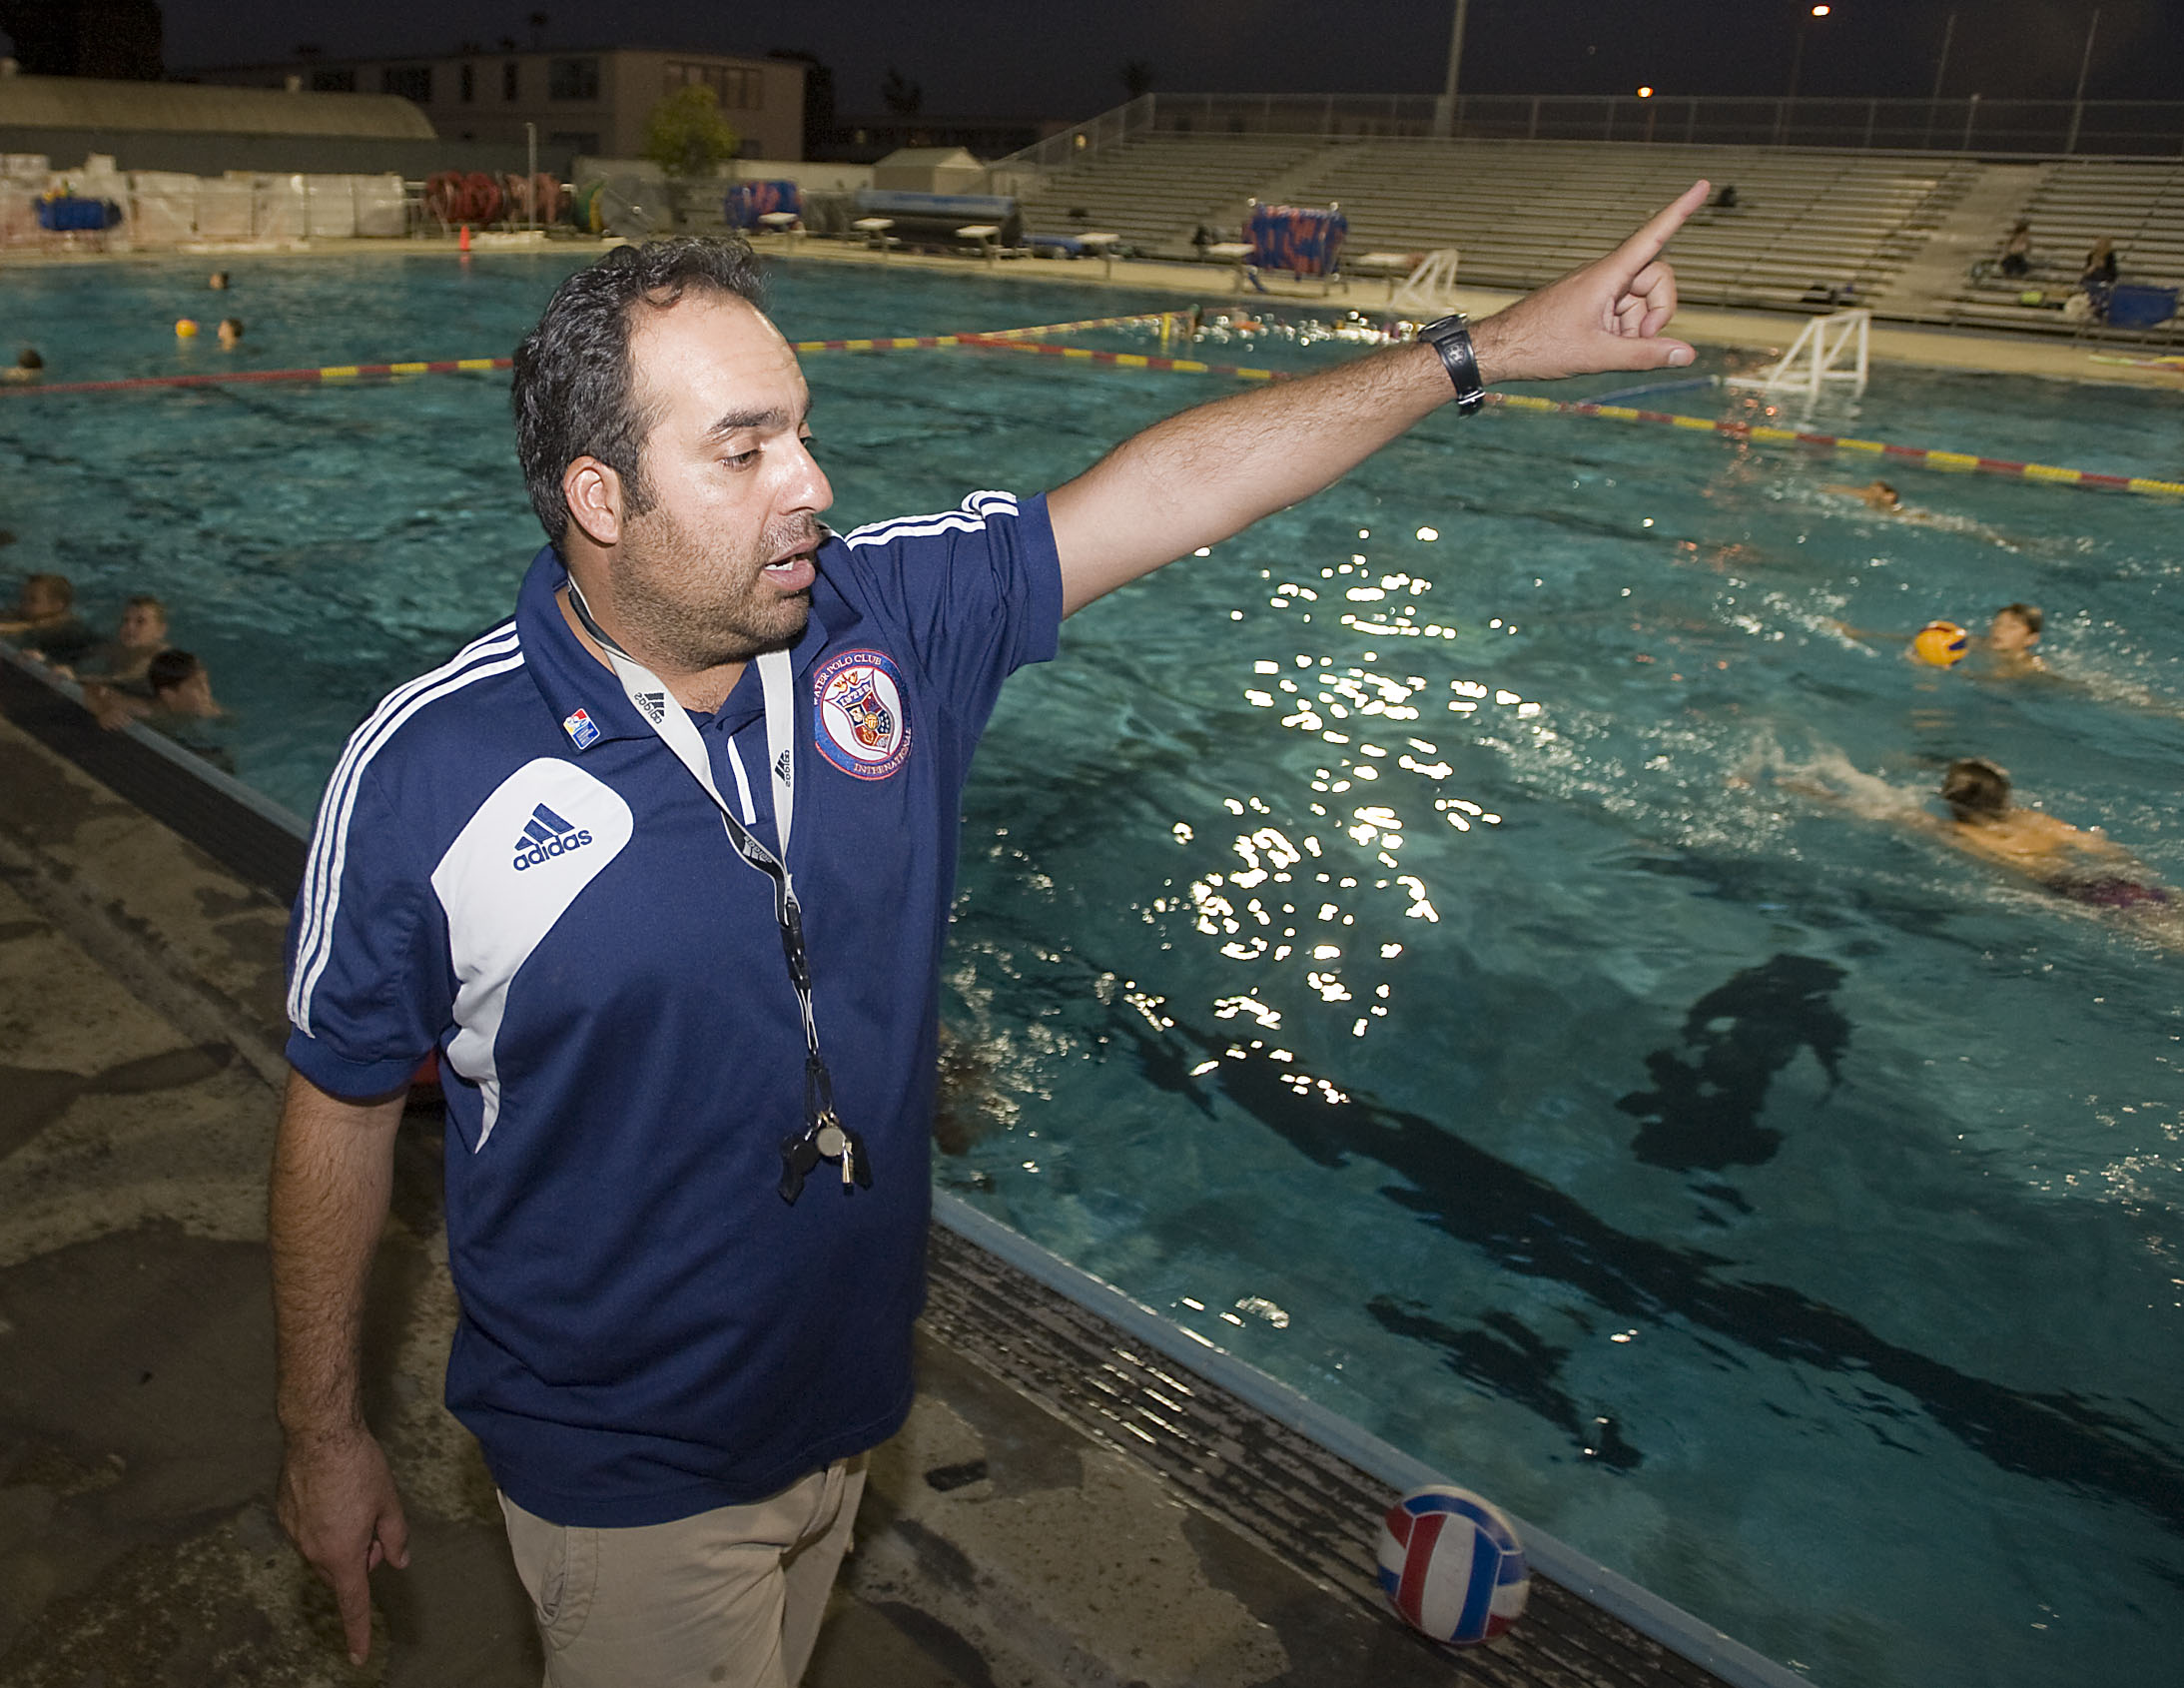 Former Los Al water polo coach at center of suit against USA water polo